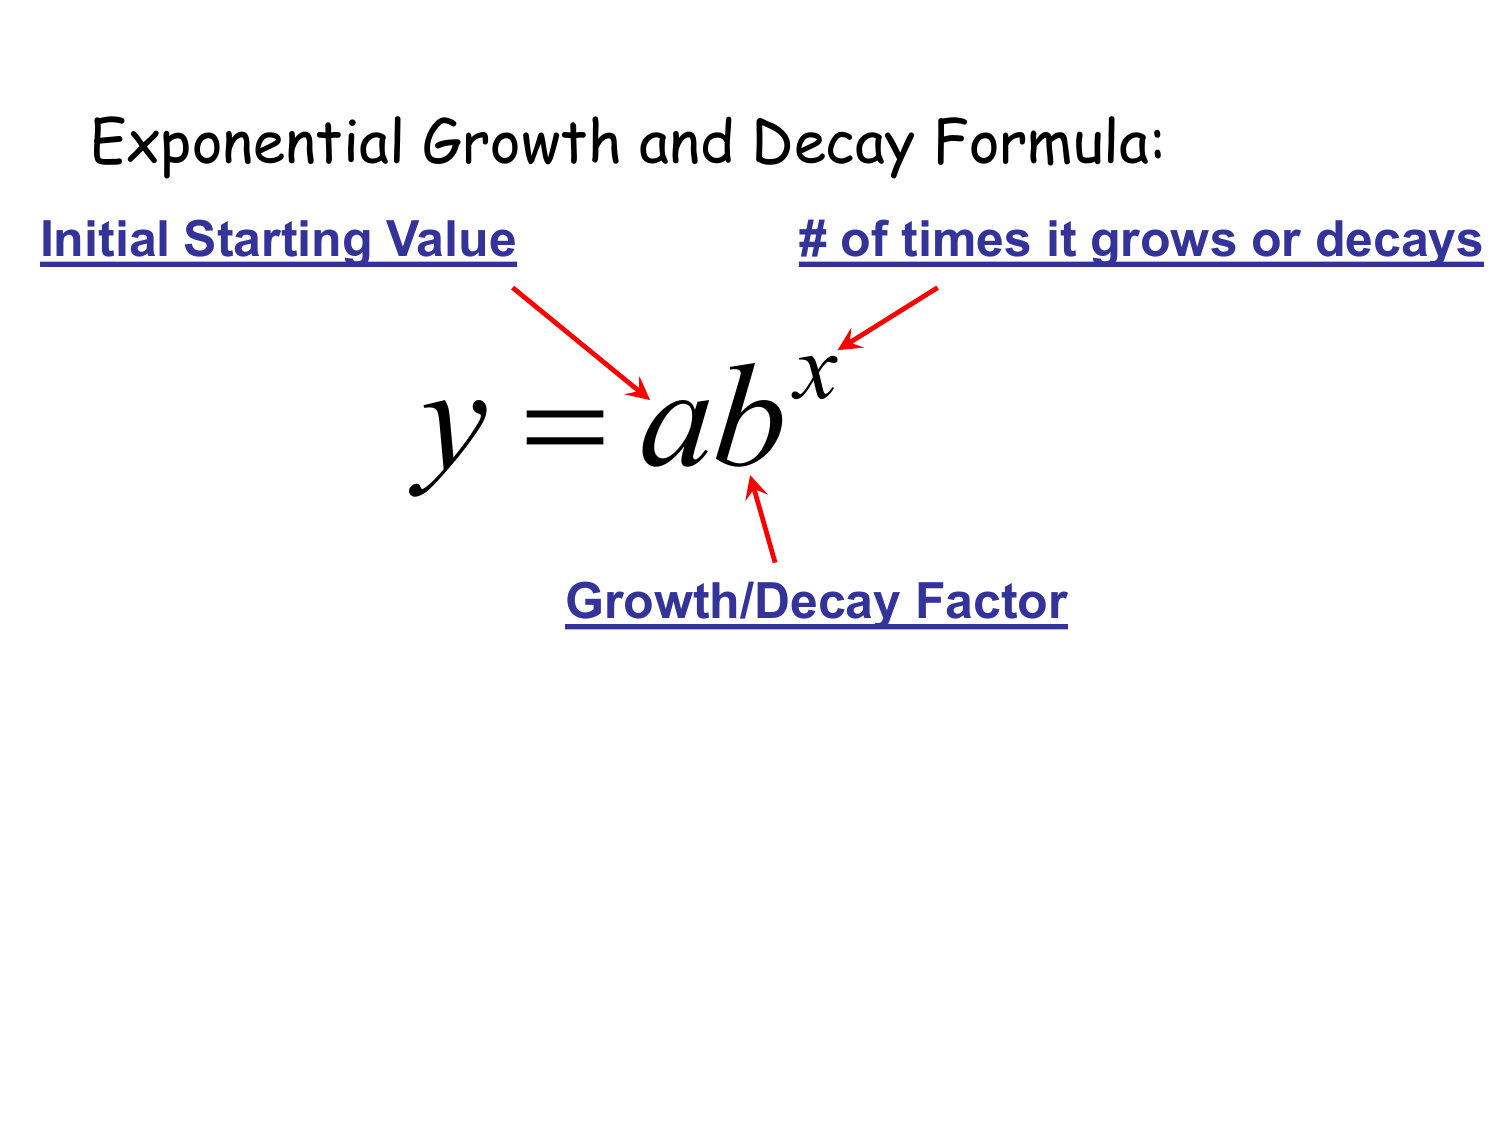 Exponential Decay Equation